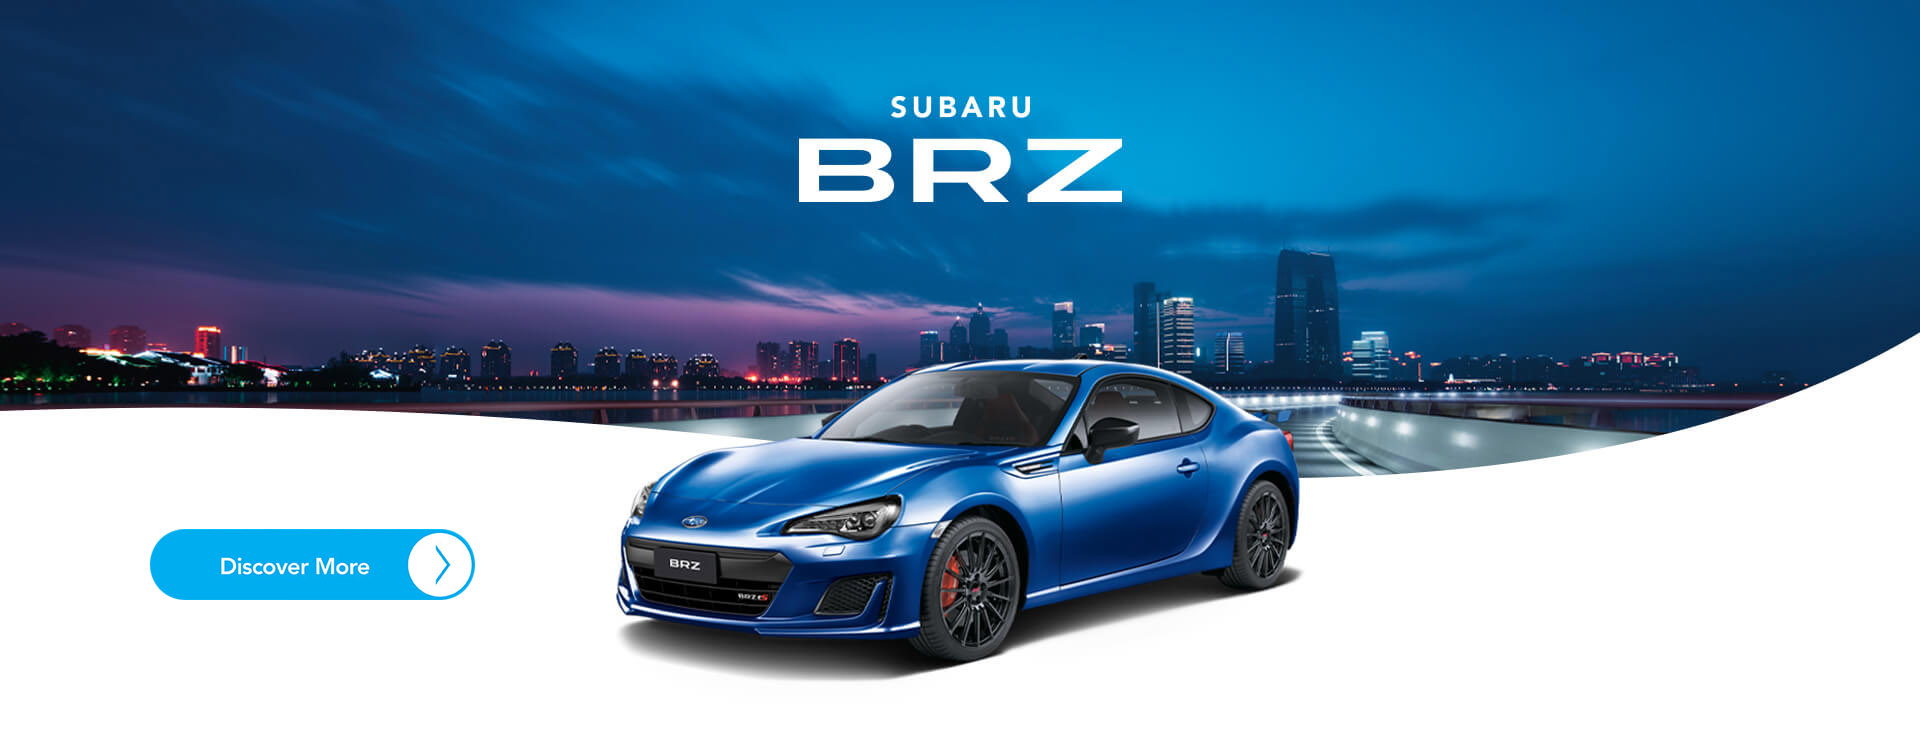 New MY20 Subaru BRZ now available at Subaru Tamworth. Test Drive Today!